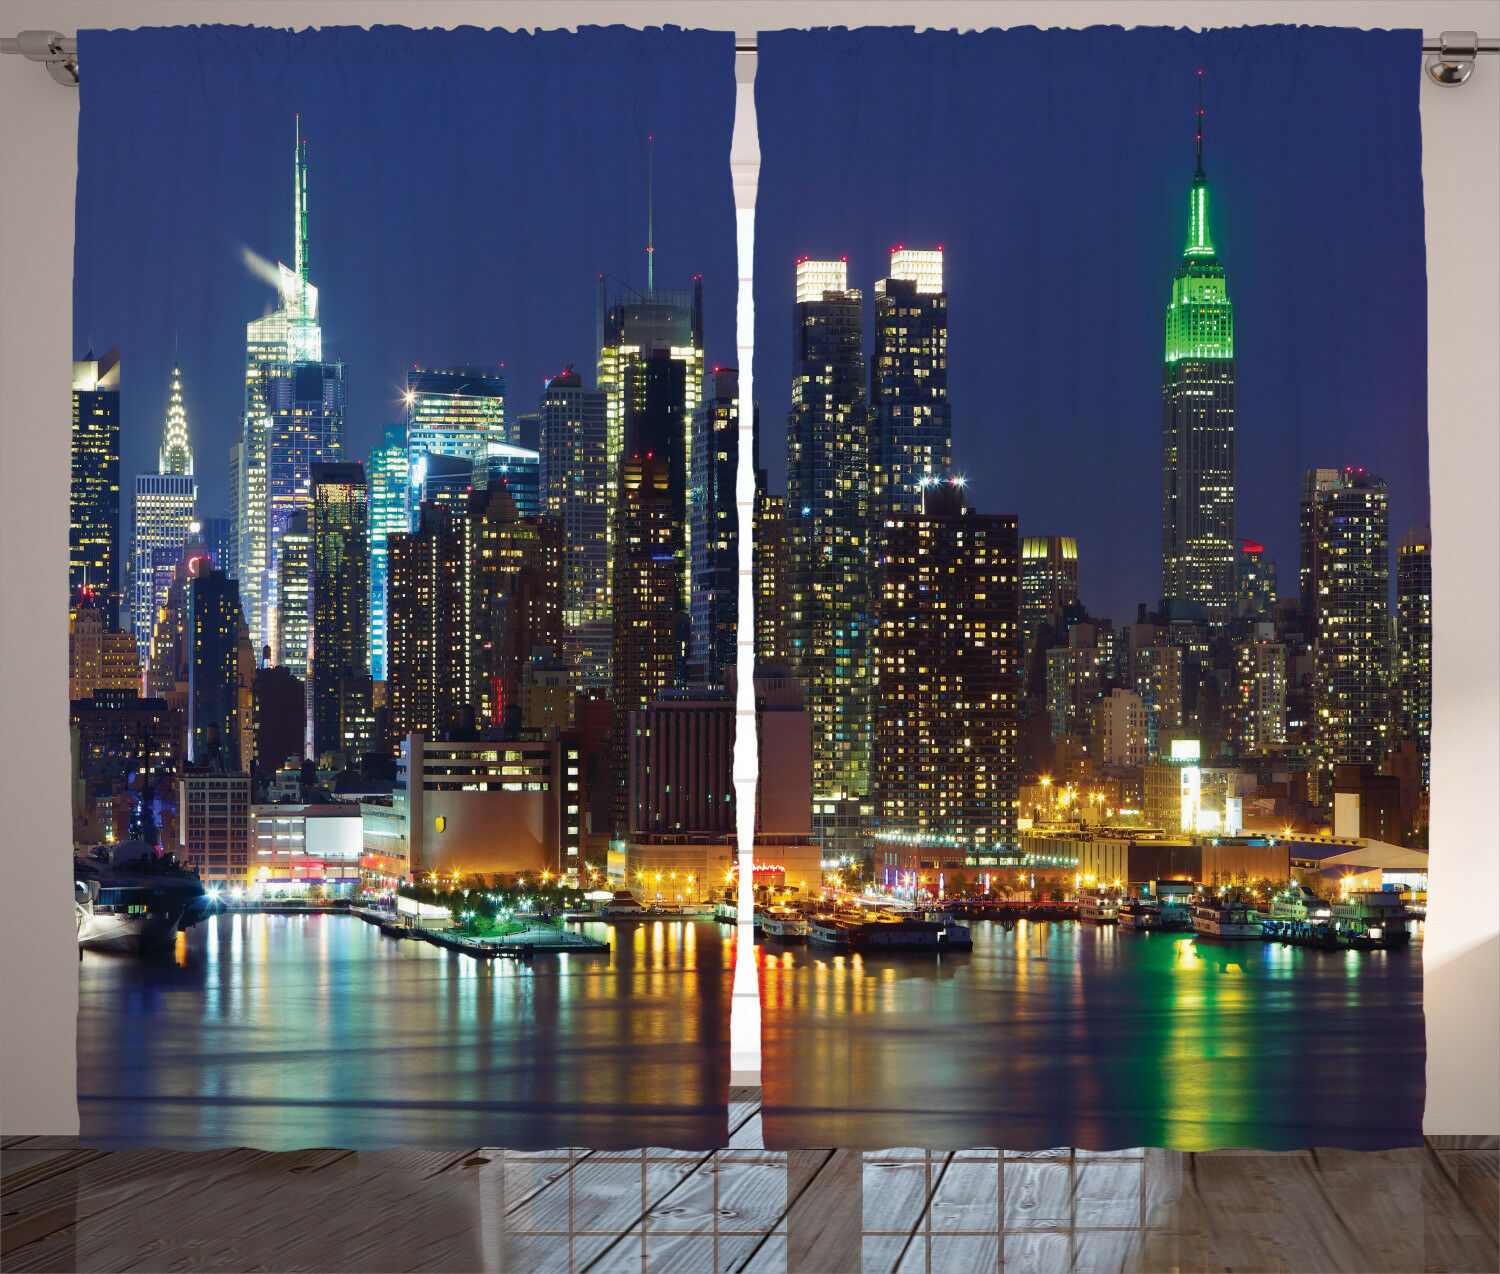 Scenery Curtains NYC Midtown Midtown Midtown Skyline Window Drapes 2 Panel Set 108x84 Inches 517c89